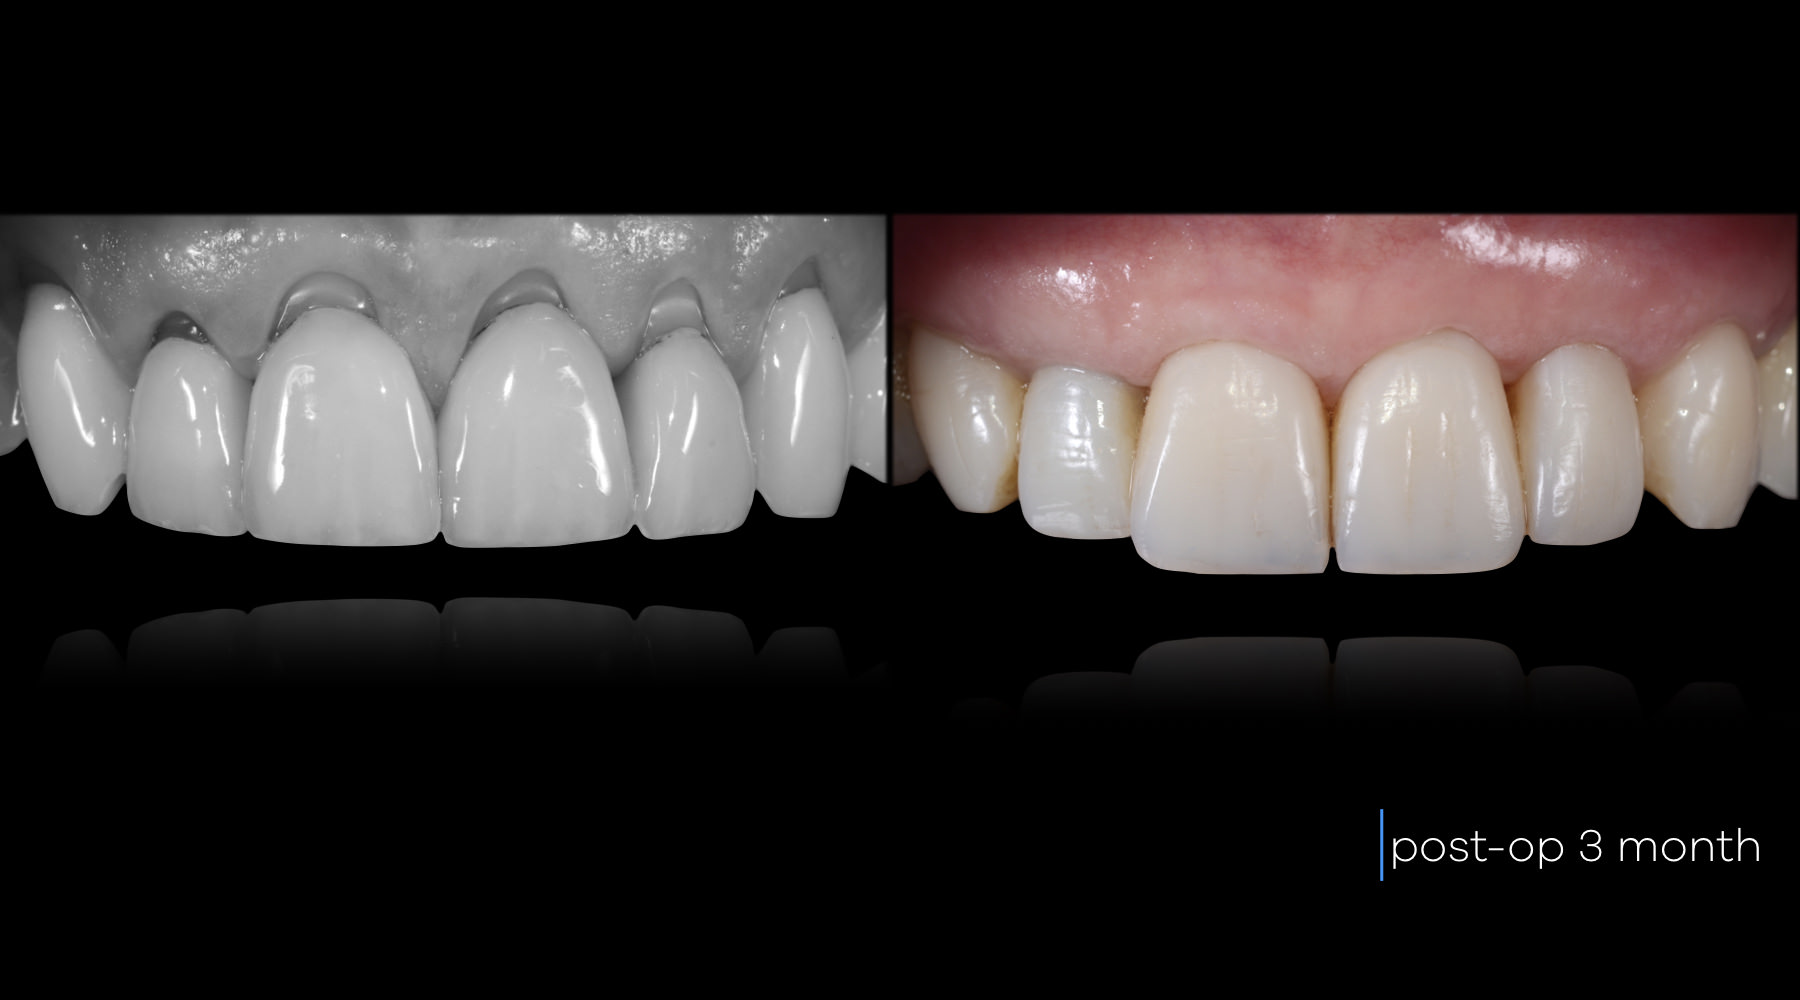 Gingival recession surgery - Before and after